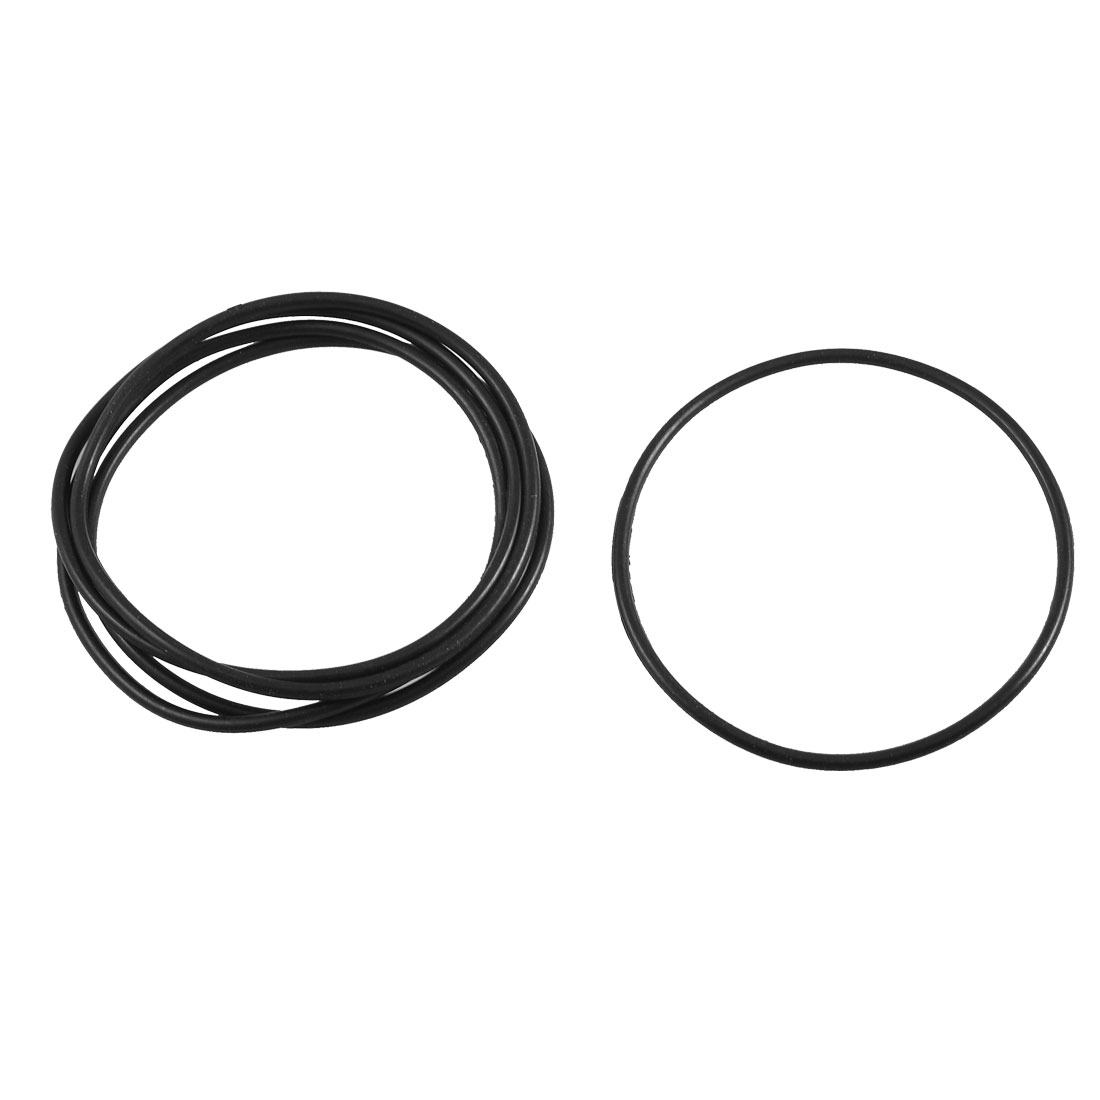 5 Pcs Black Rubber Sealing Oil Filter O Rings Gaskets 74.3mm x 69mm x 2.65mm